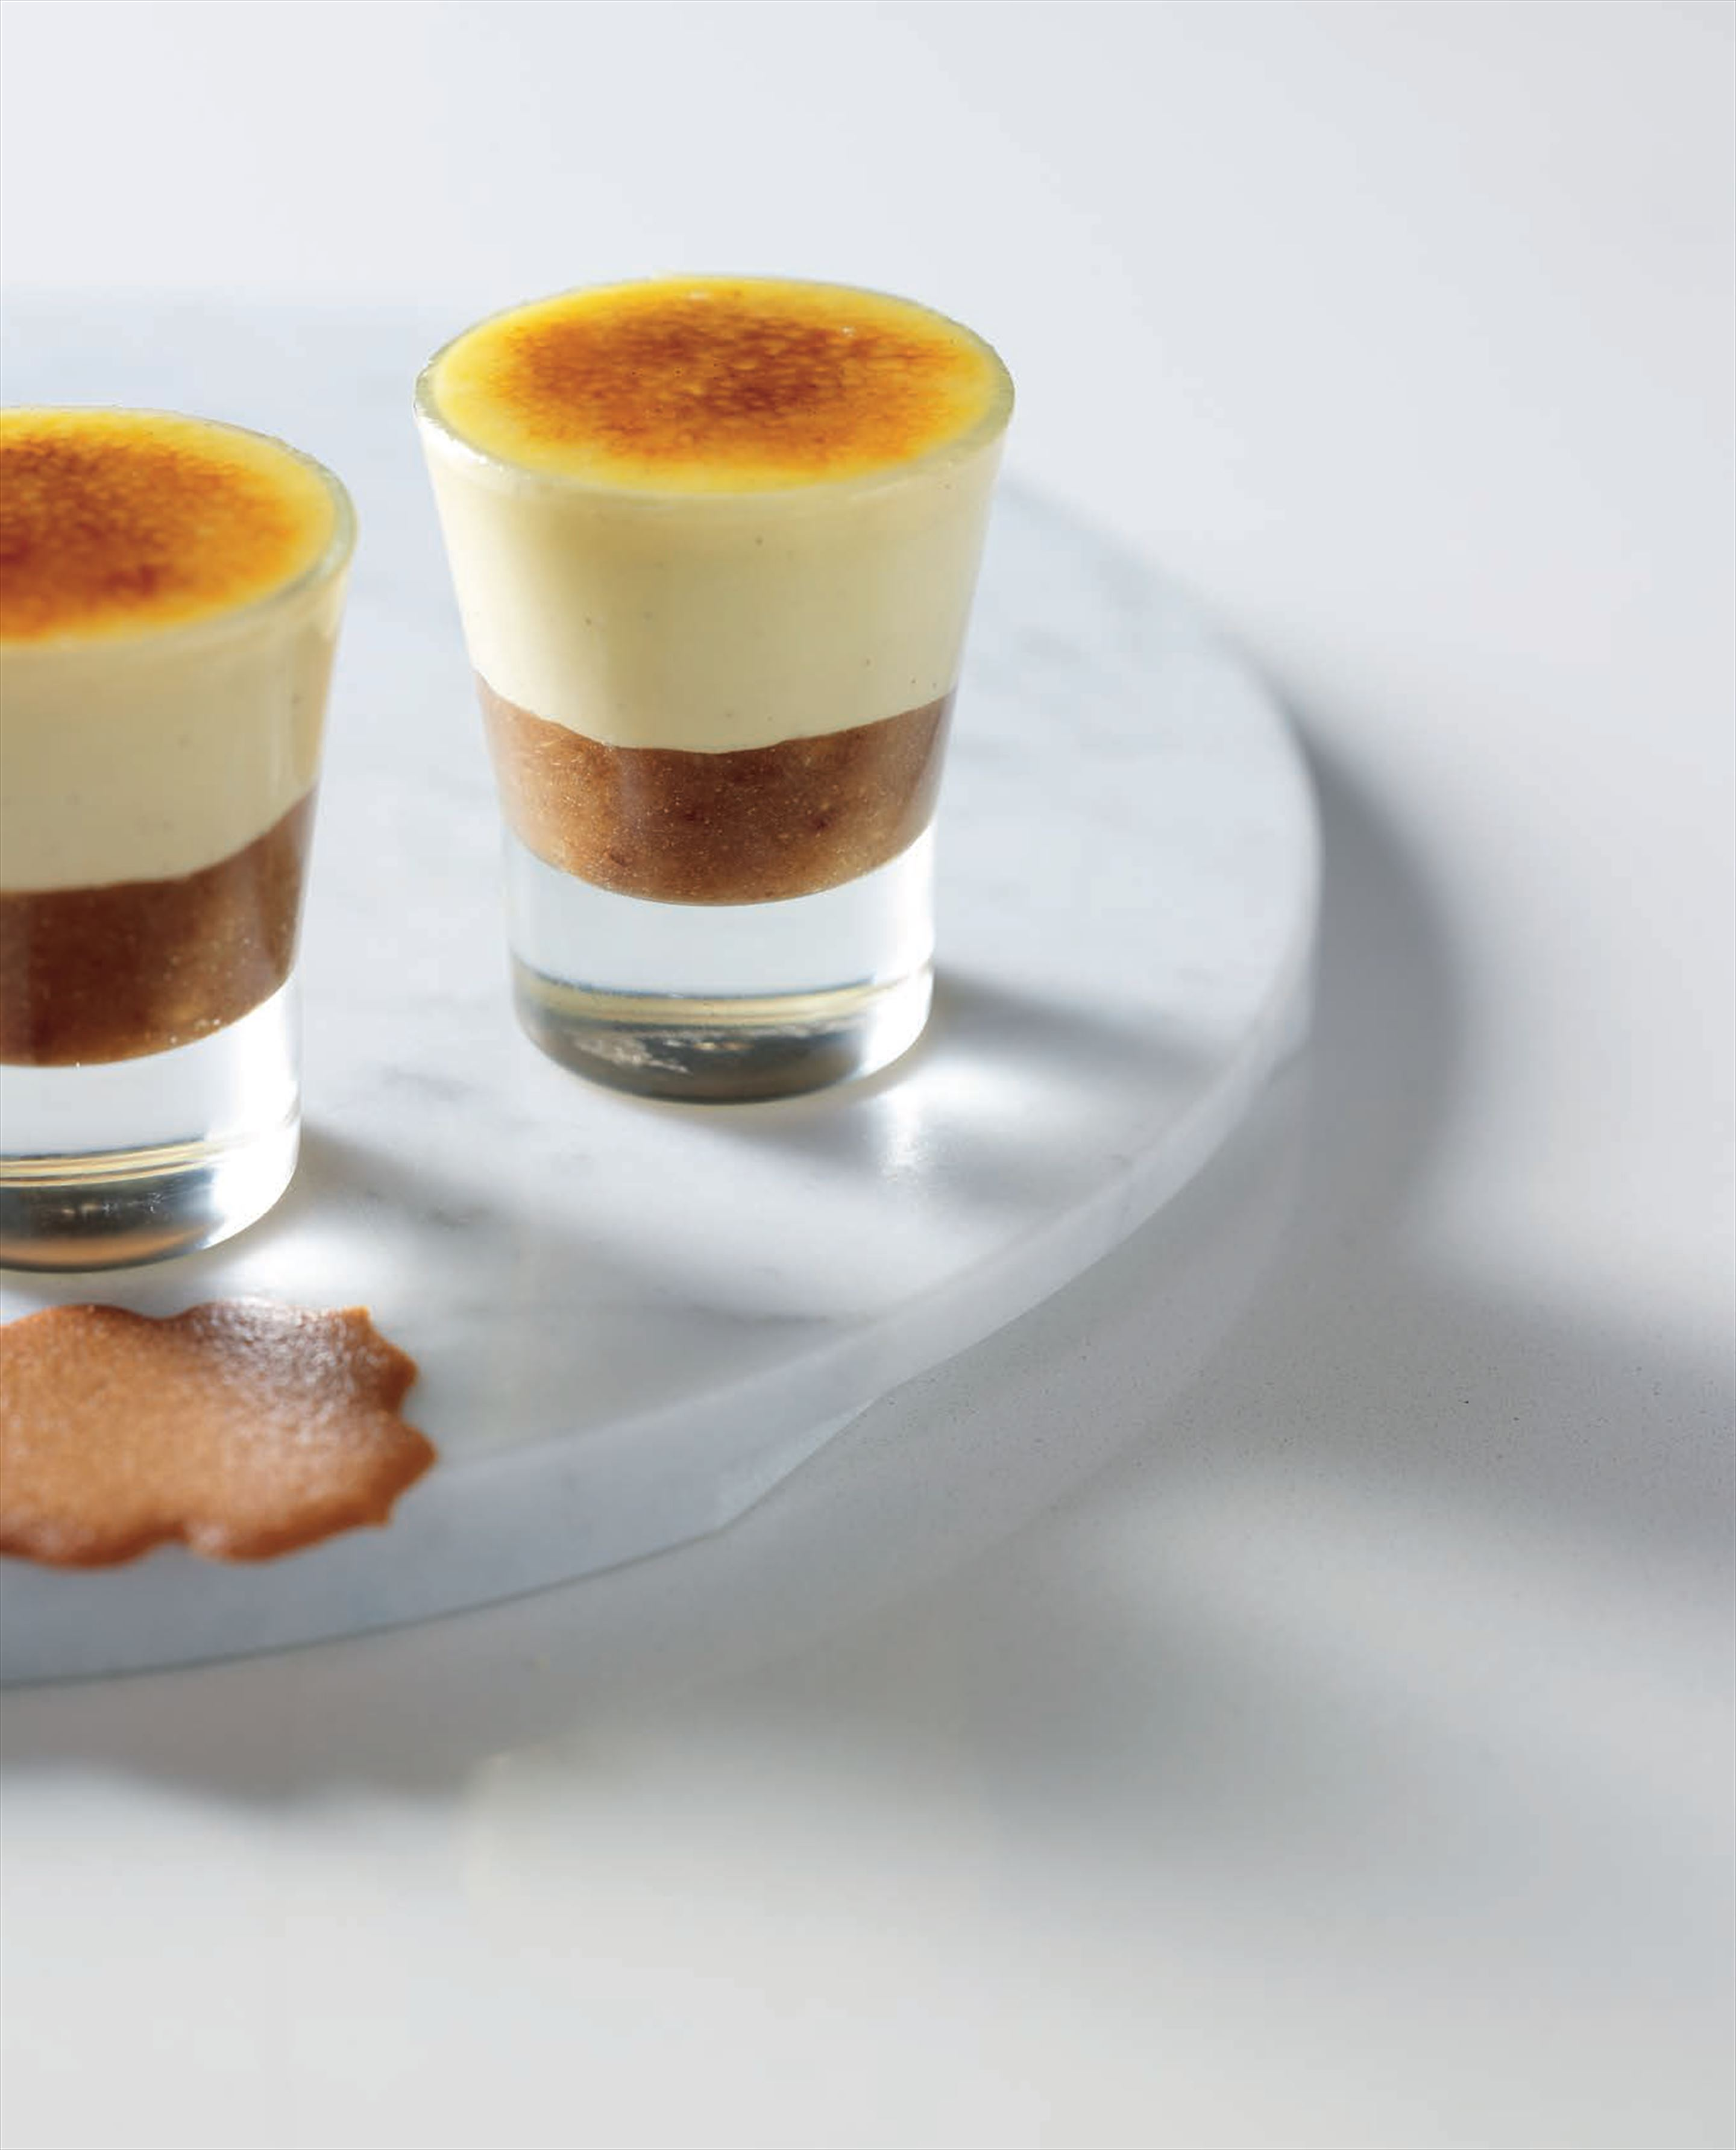 Date brûlée with Kahlúa